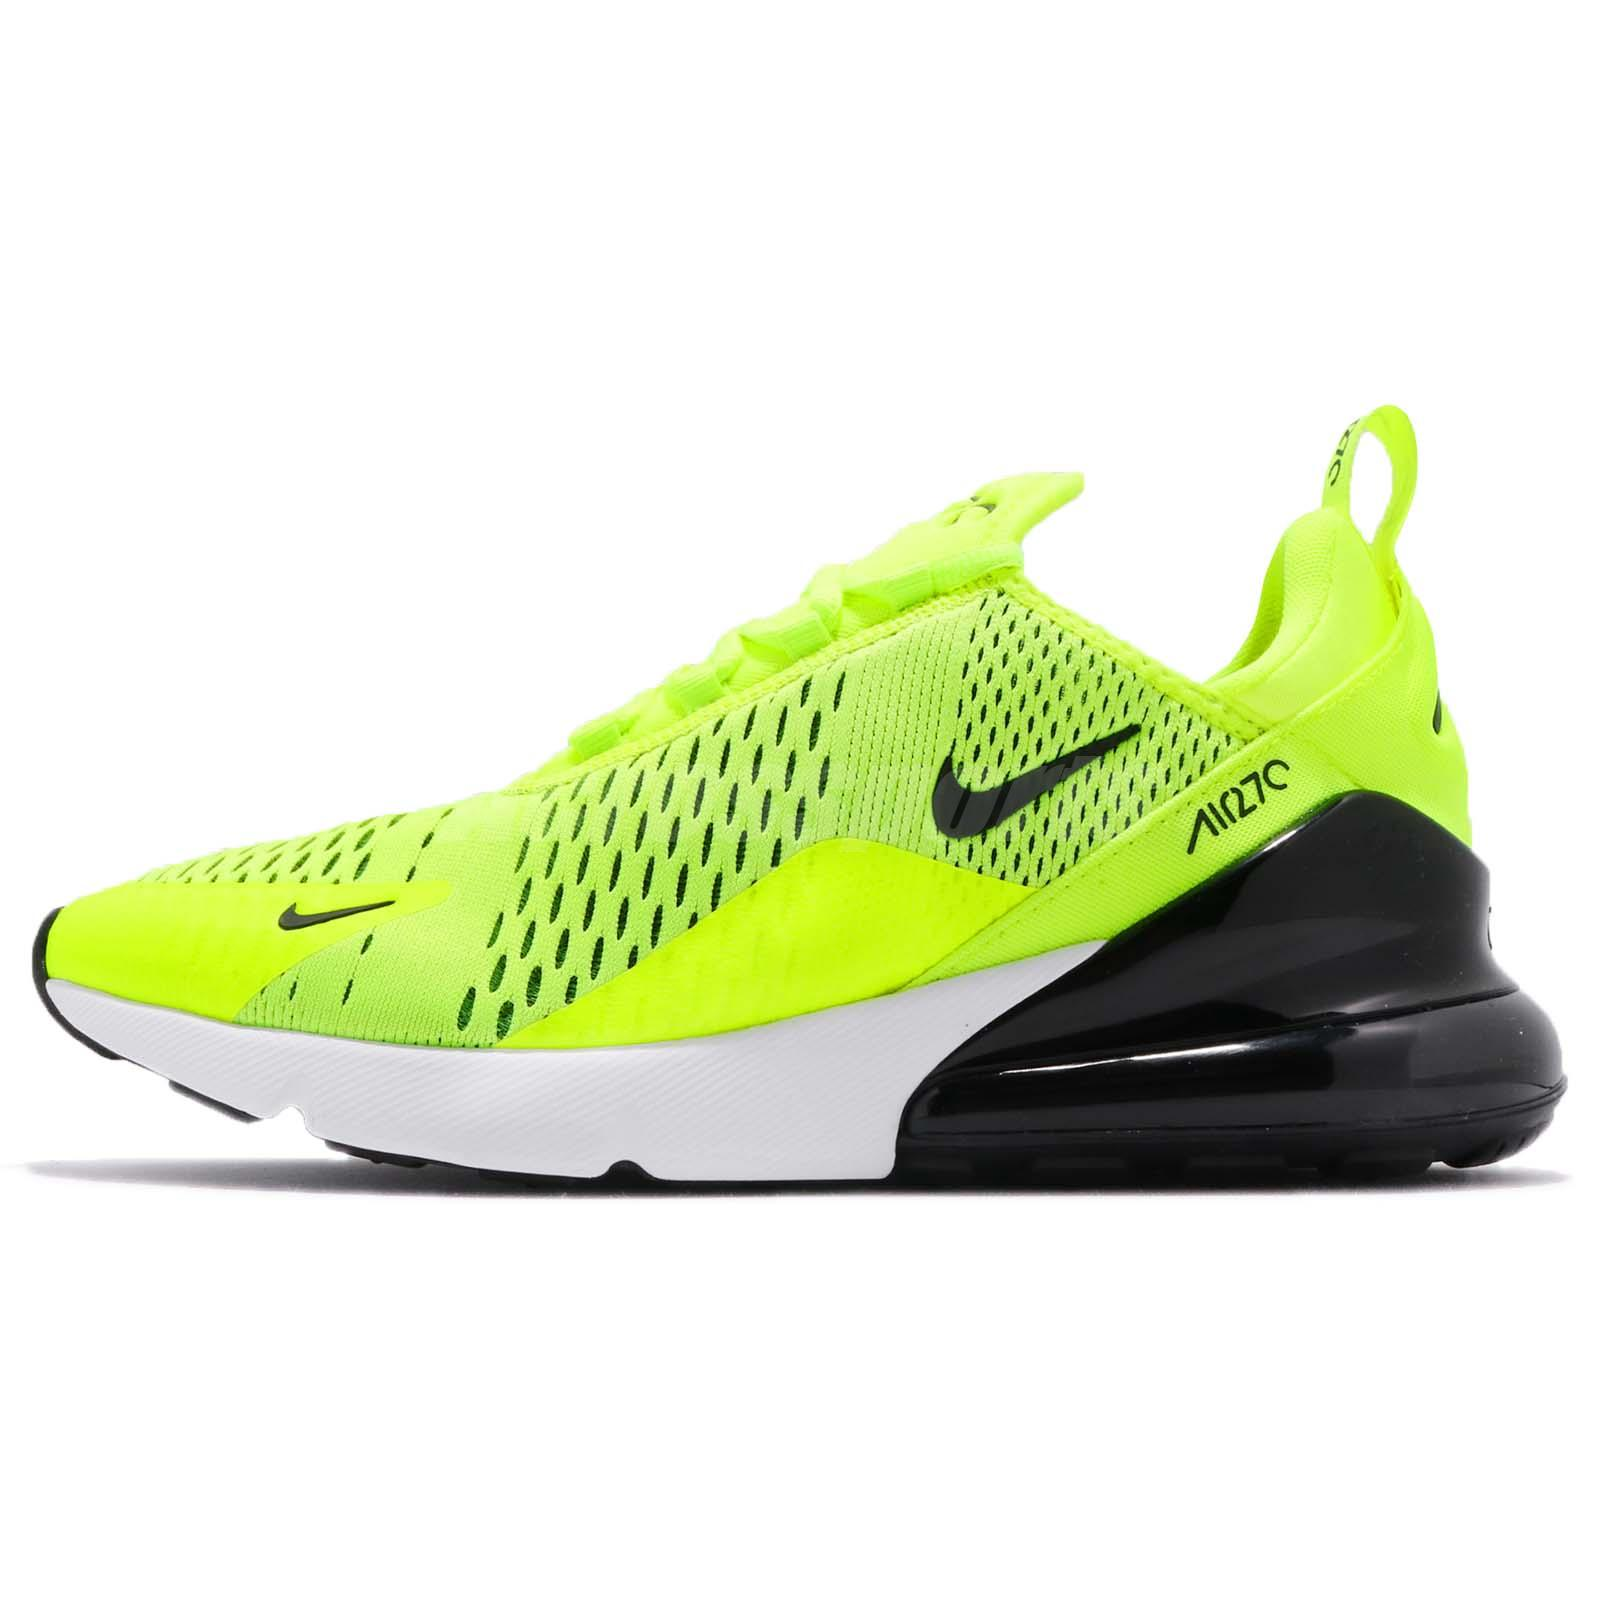 more photos 99169 aaf31 Nike Air Max 270 Volt Black White Men Running Casual Shoes Sneakers  AH8050-701